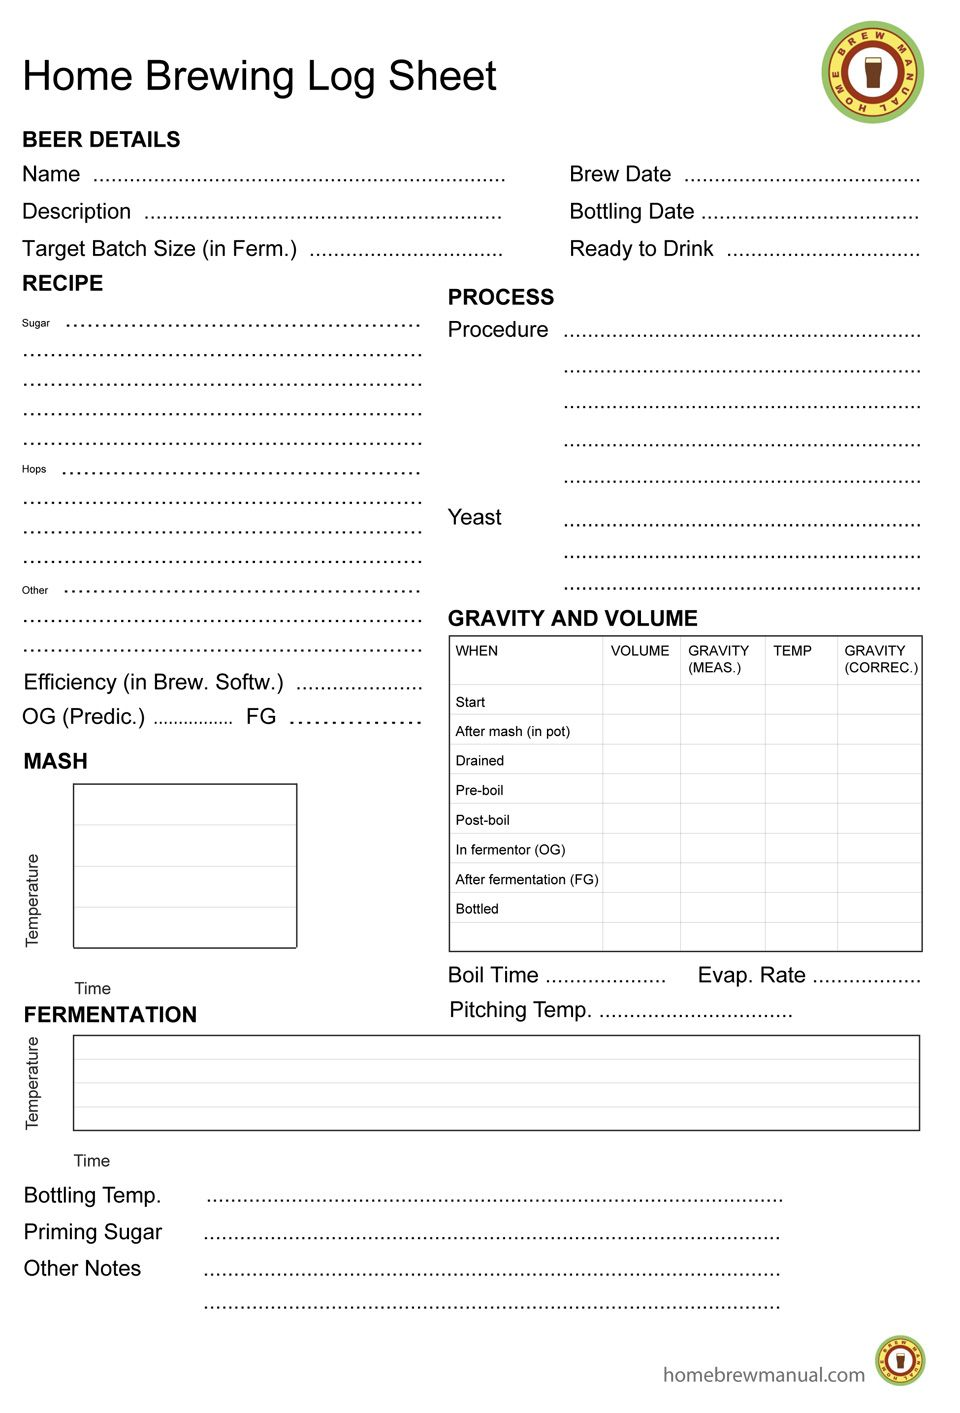 Home brewing log sheet craftbeer beer craft beer for Wine tasting journal template